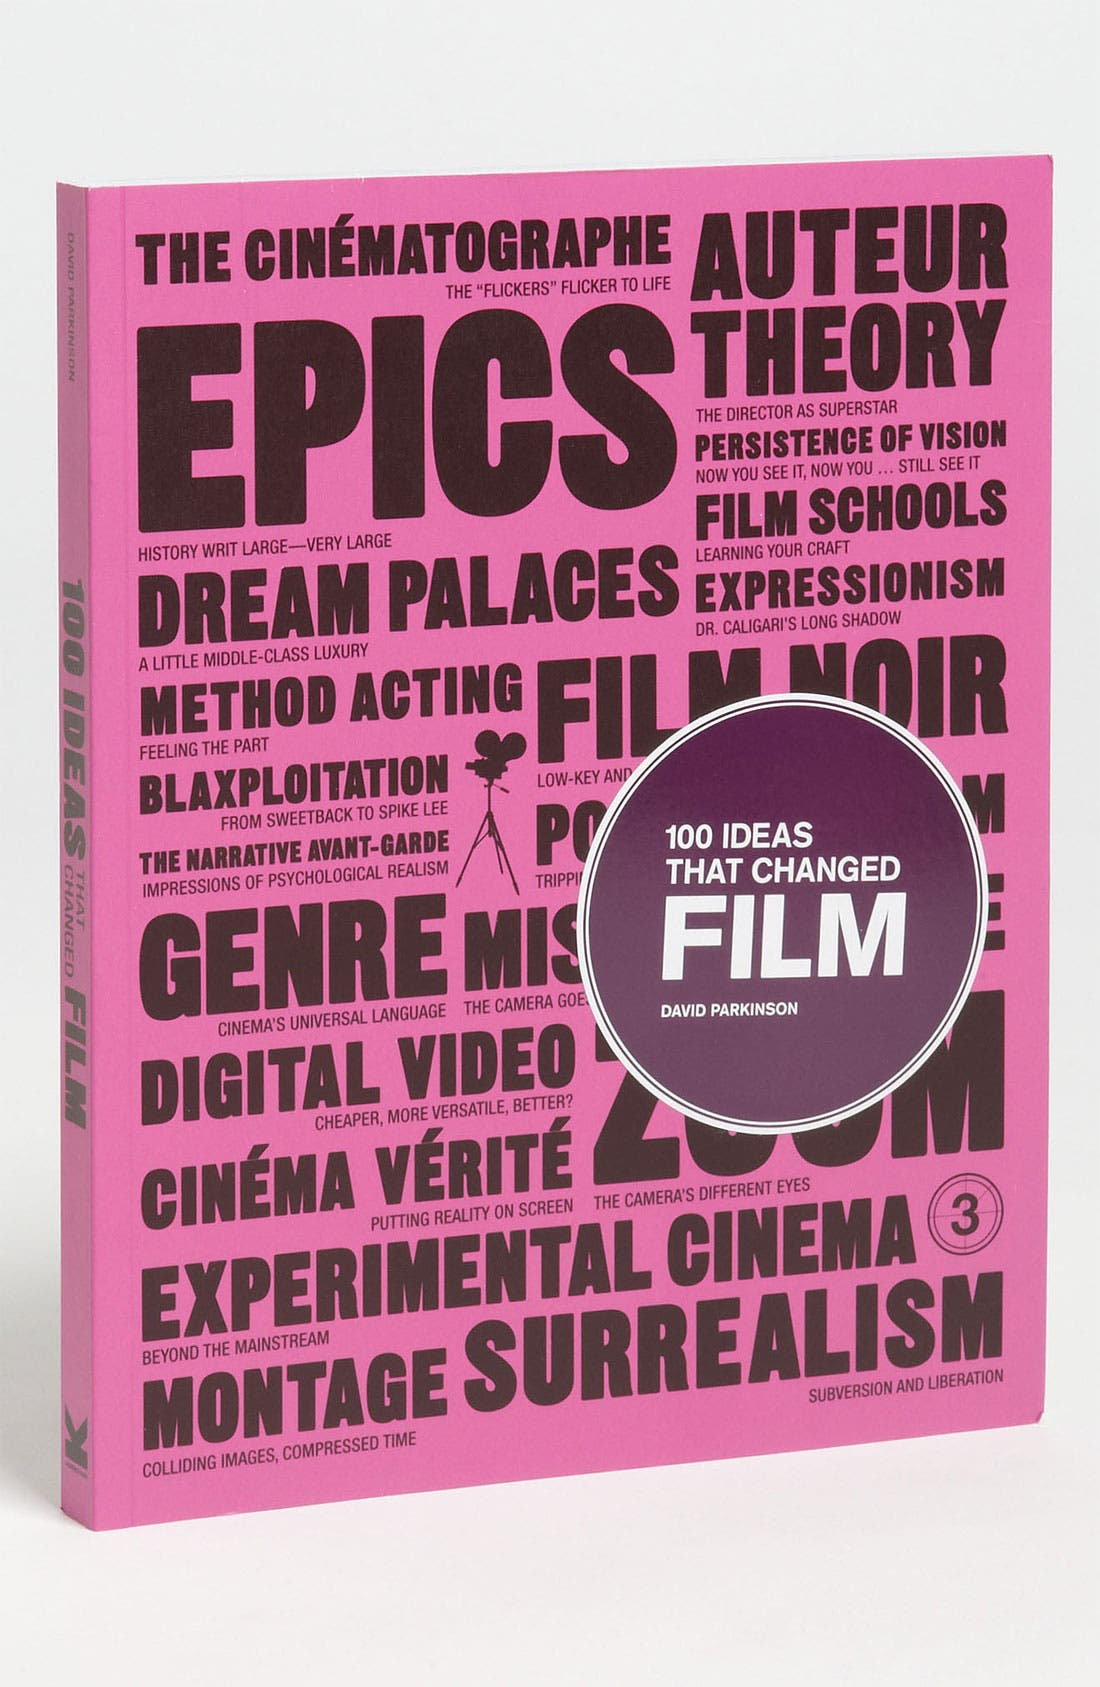 Alternate Image 1 Selected - '100 Ideas That Changed Film' Book